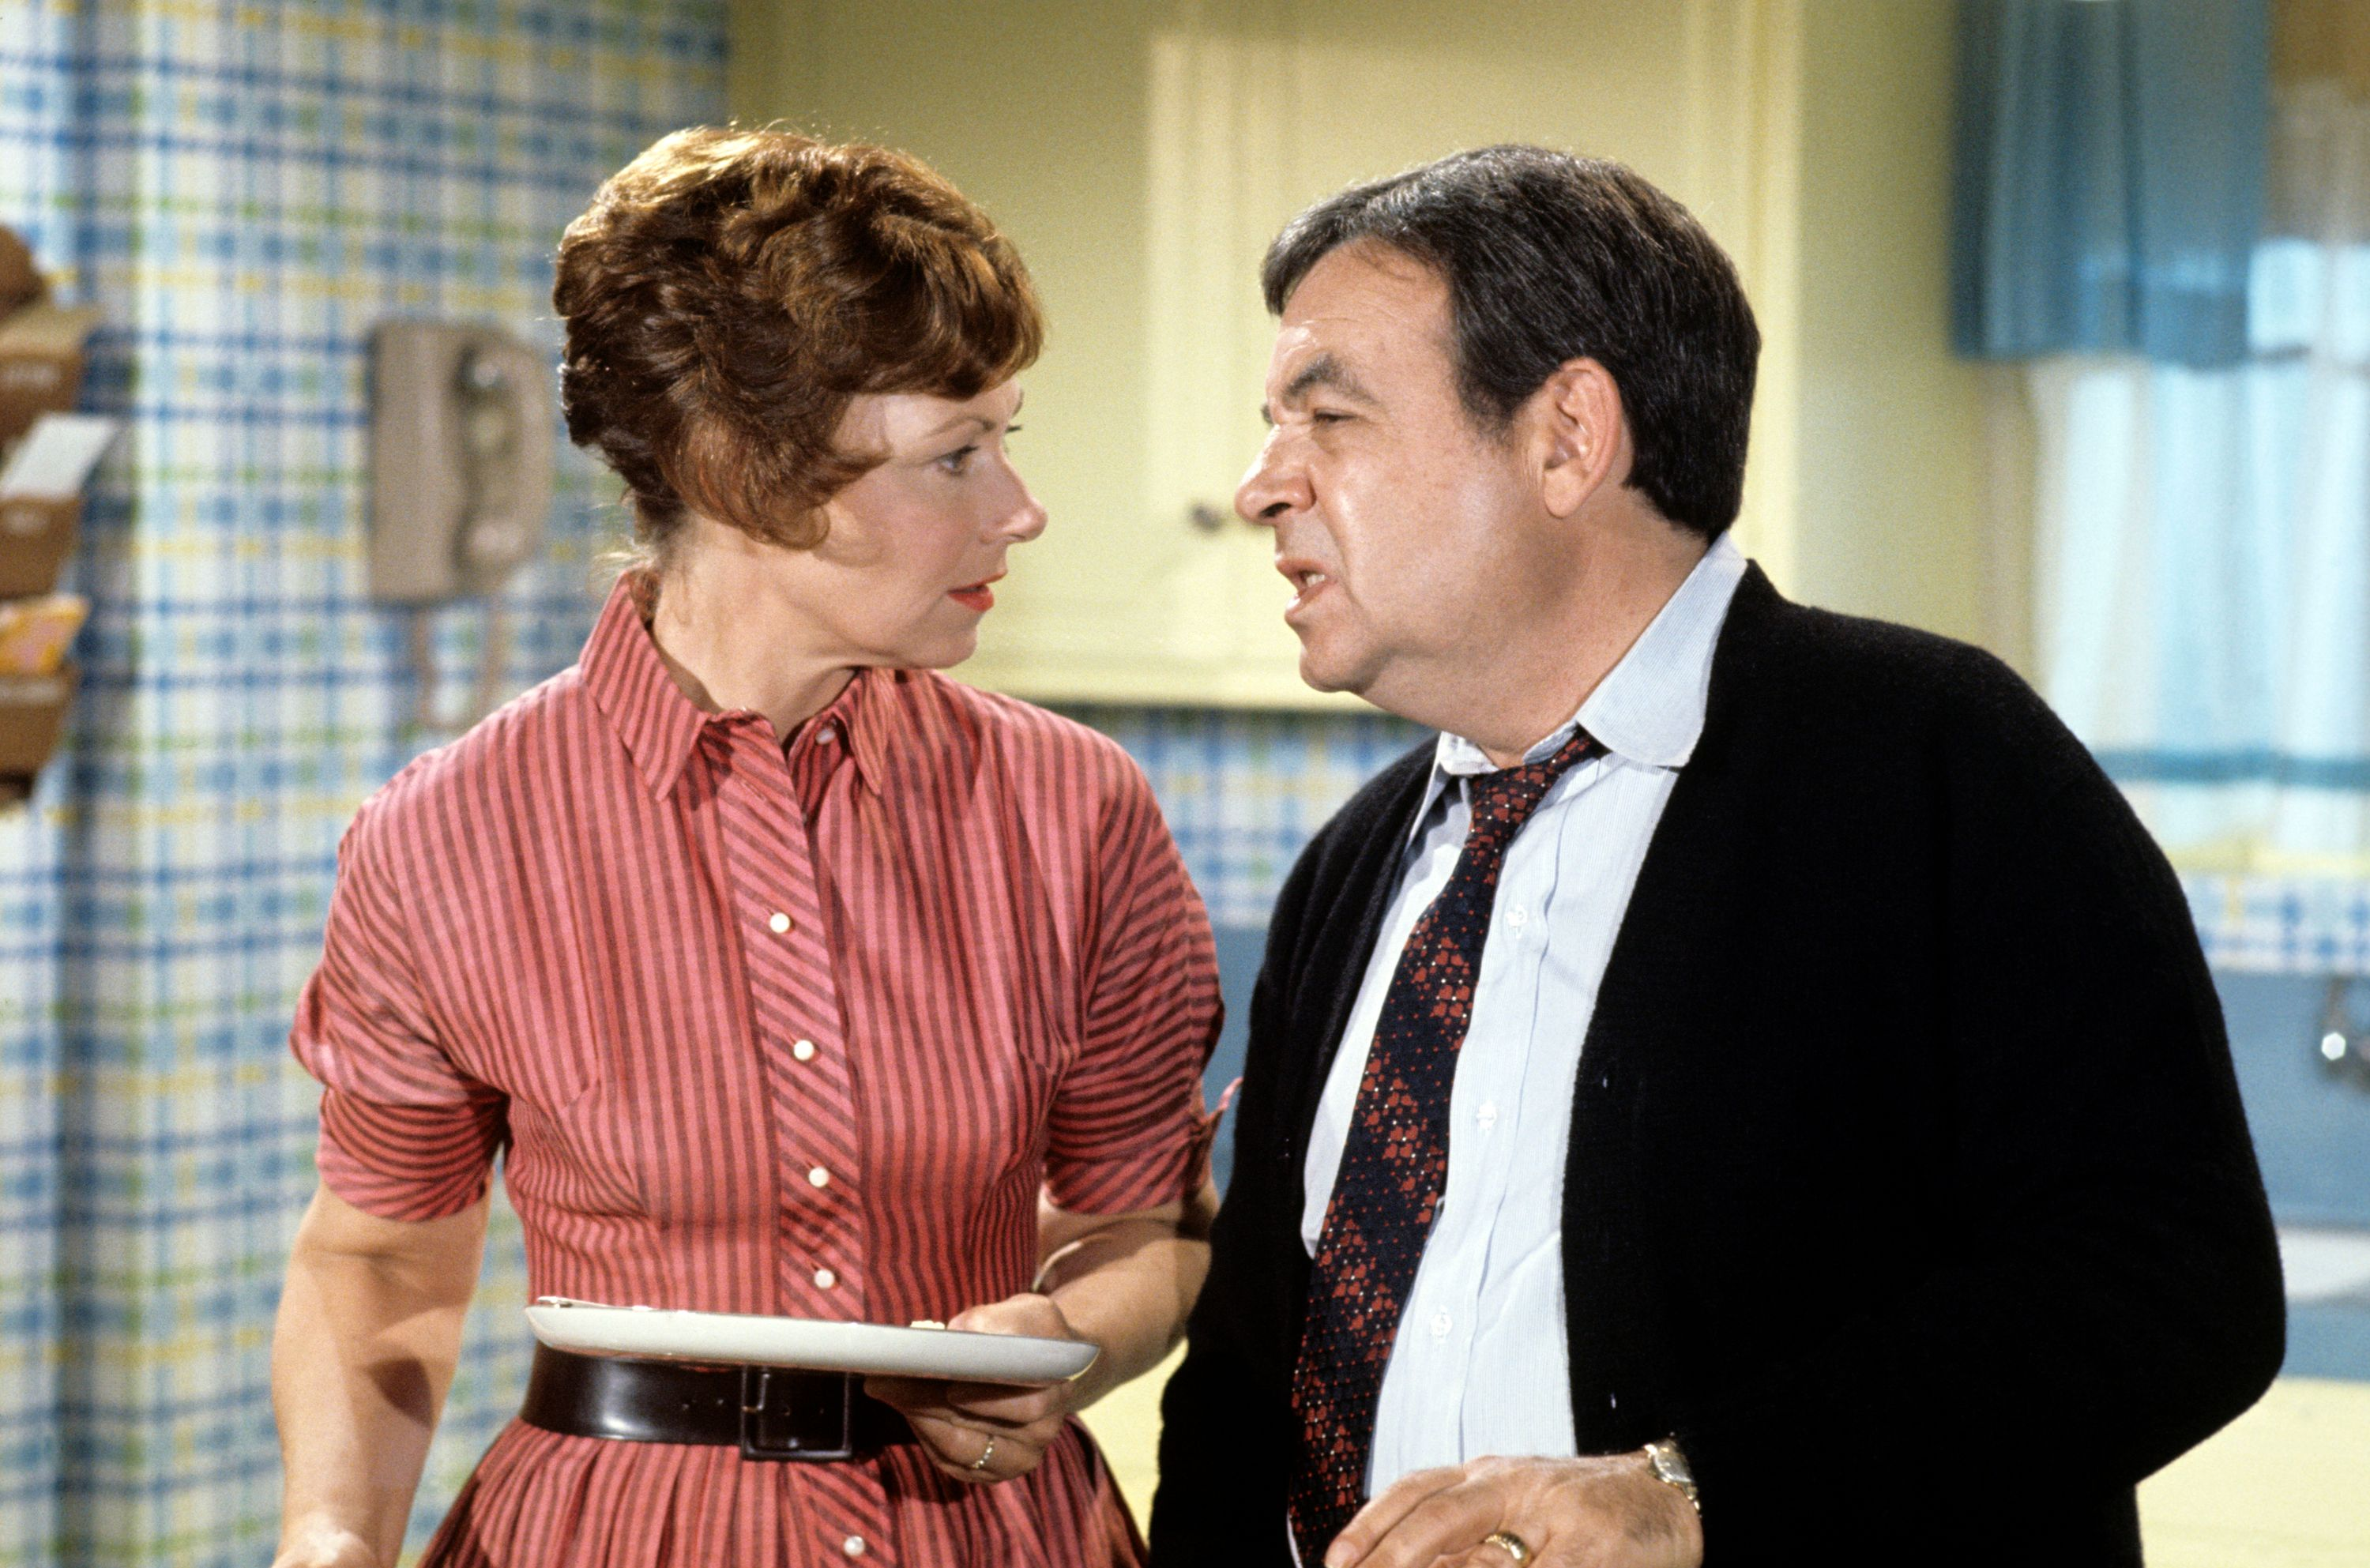 """Marion Ross (Marion) and Tom Bosley (Howard) on """"All the Way"""" Season 1, circa 1974. 